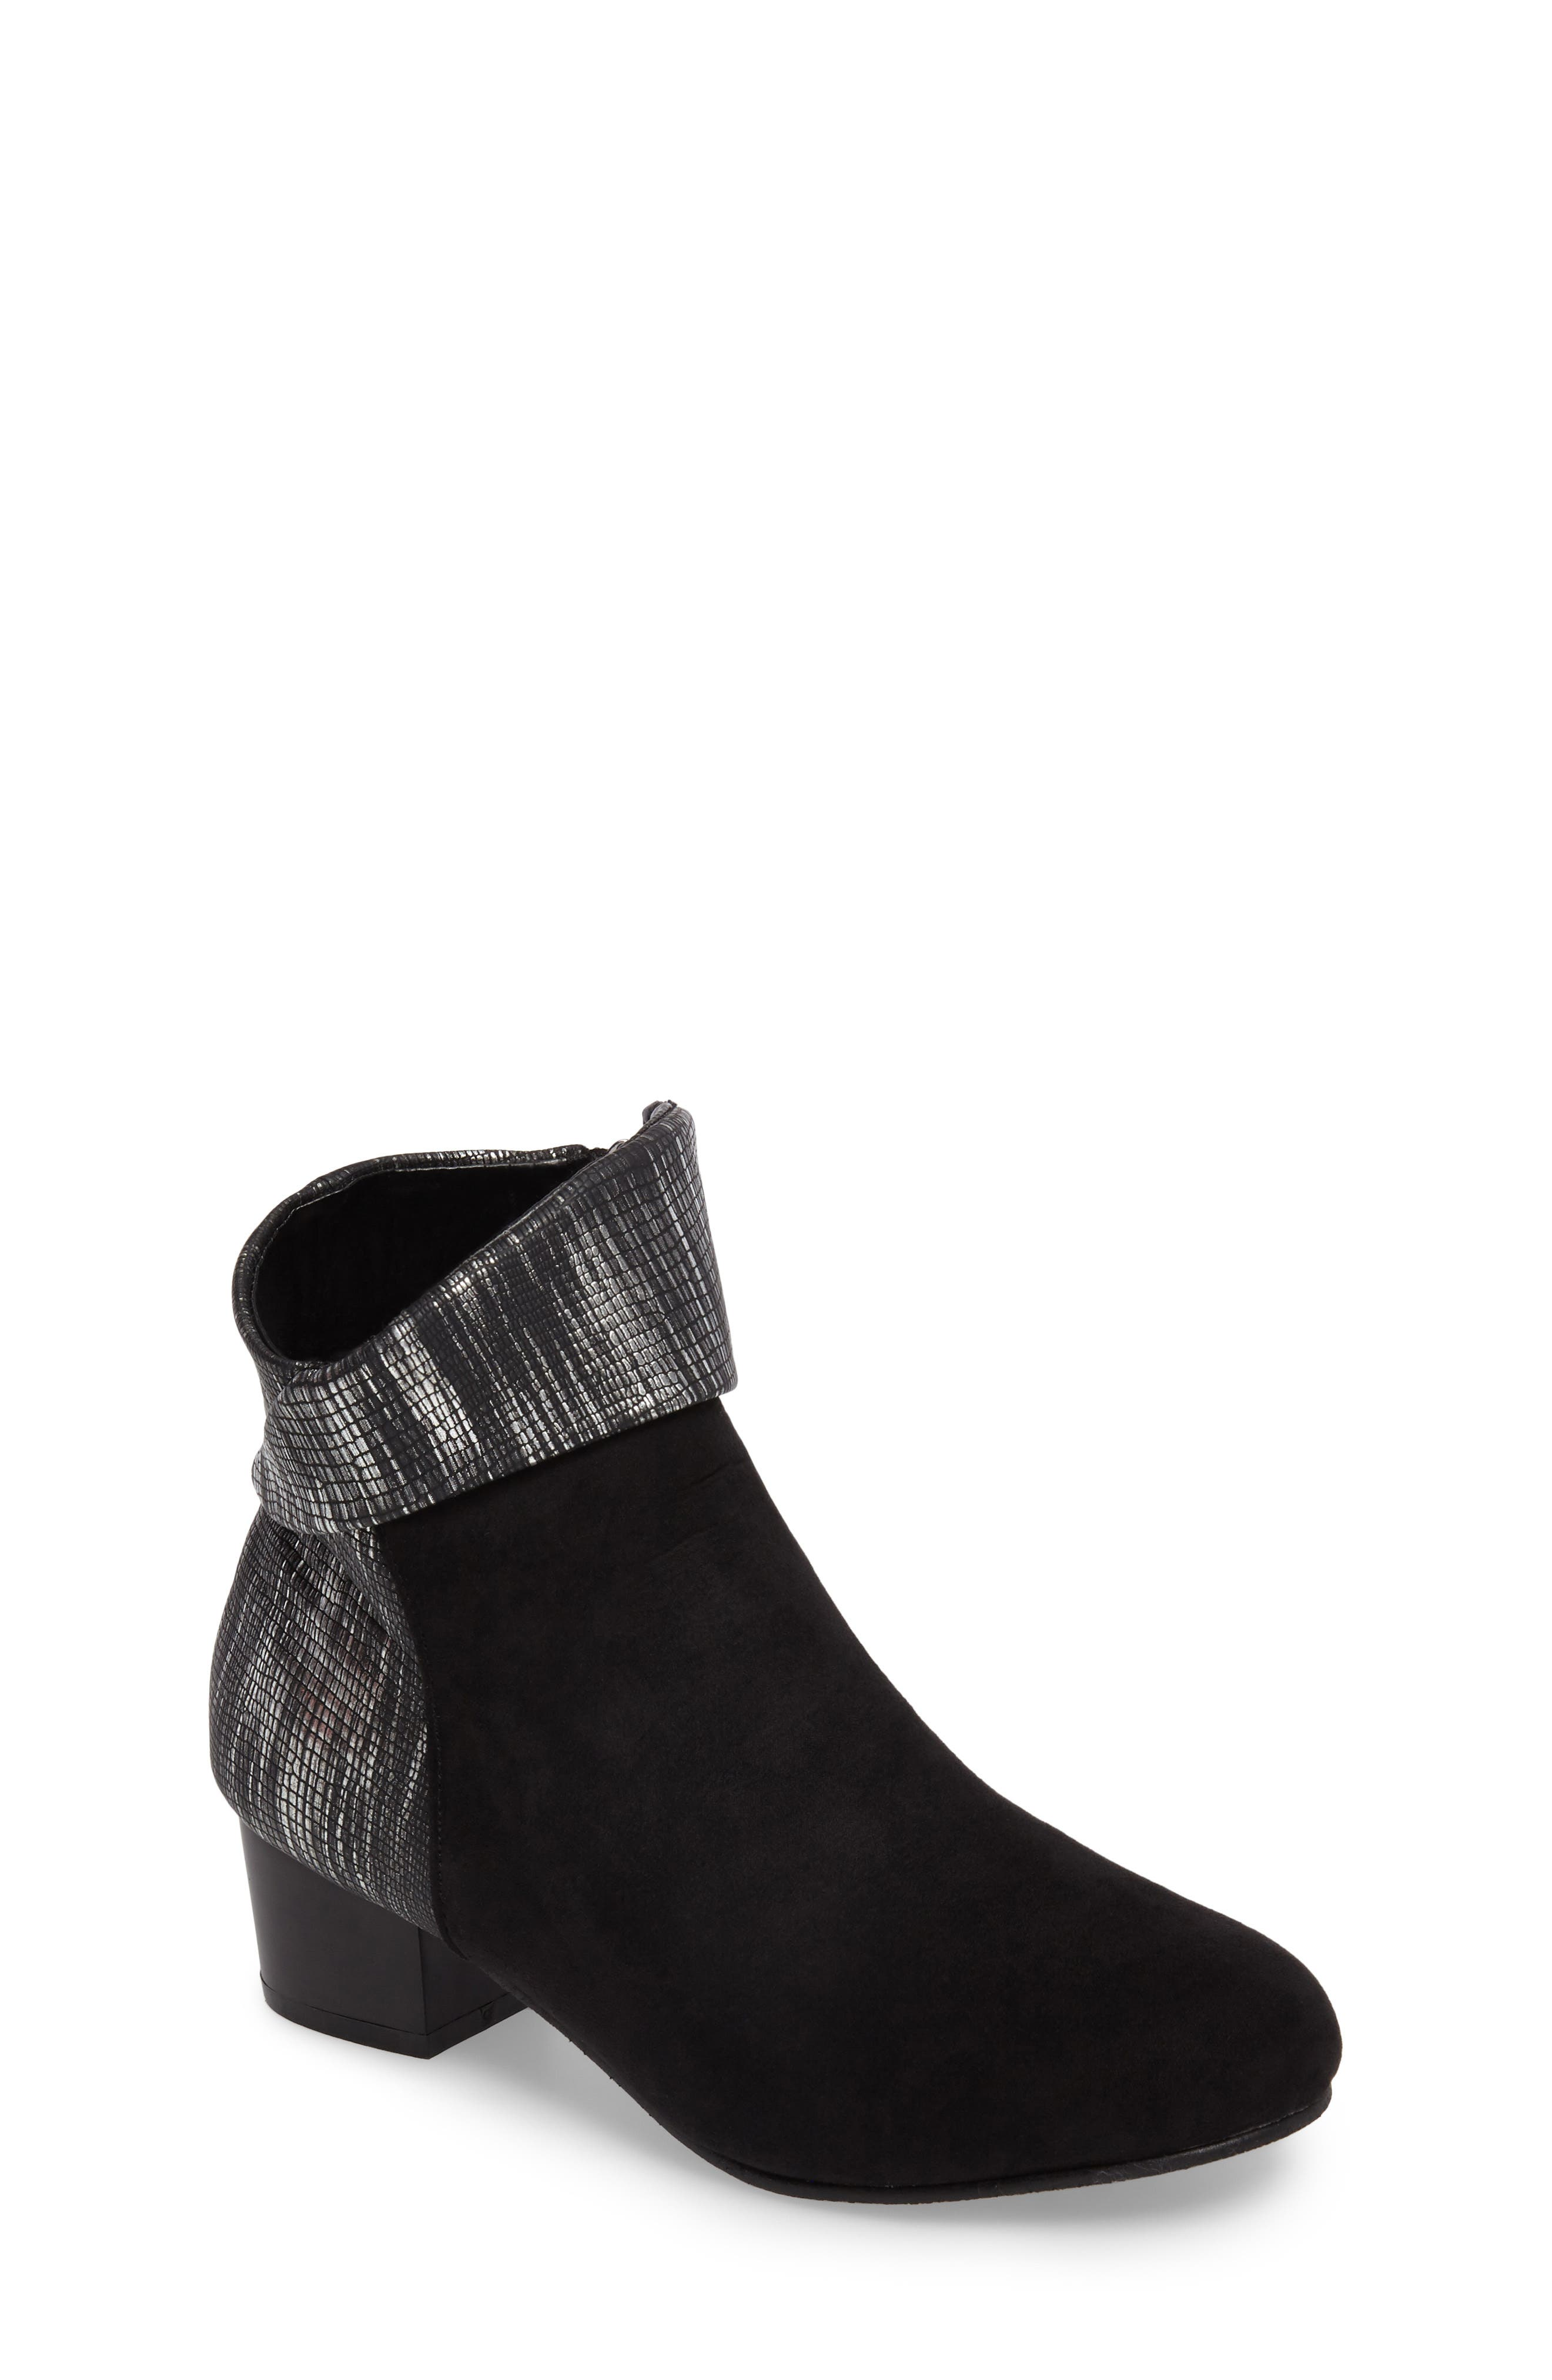 KENNETH COLE NEW YORK Linea Cuff Bootie